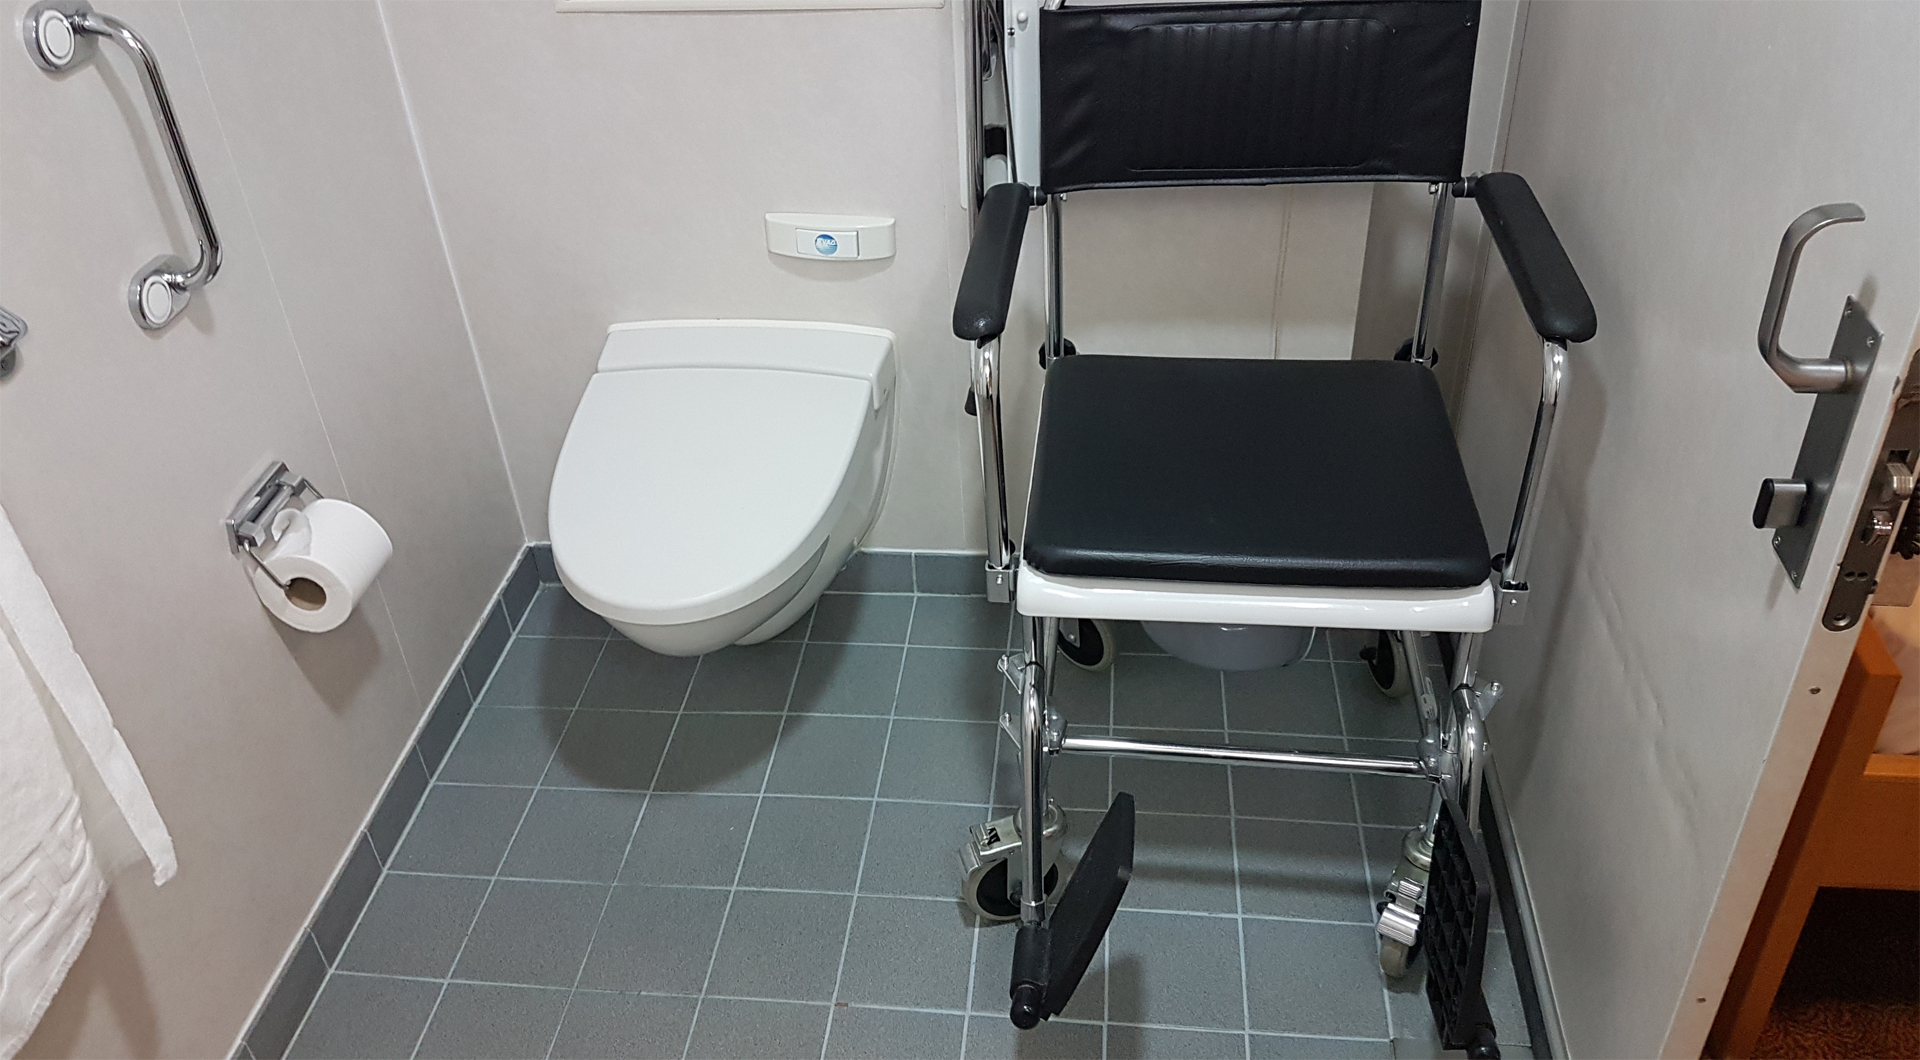 NorthLink Ferries wheelchair accessible cabin bathroom with shower commode chair.